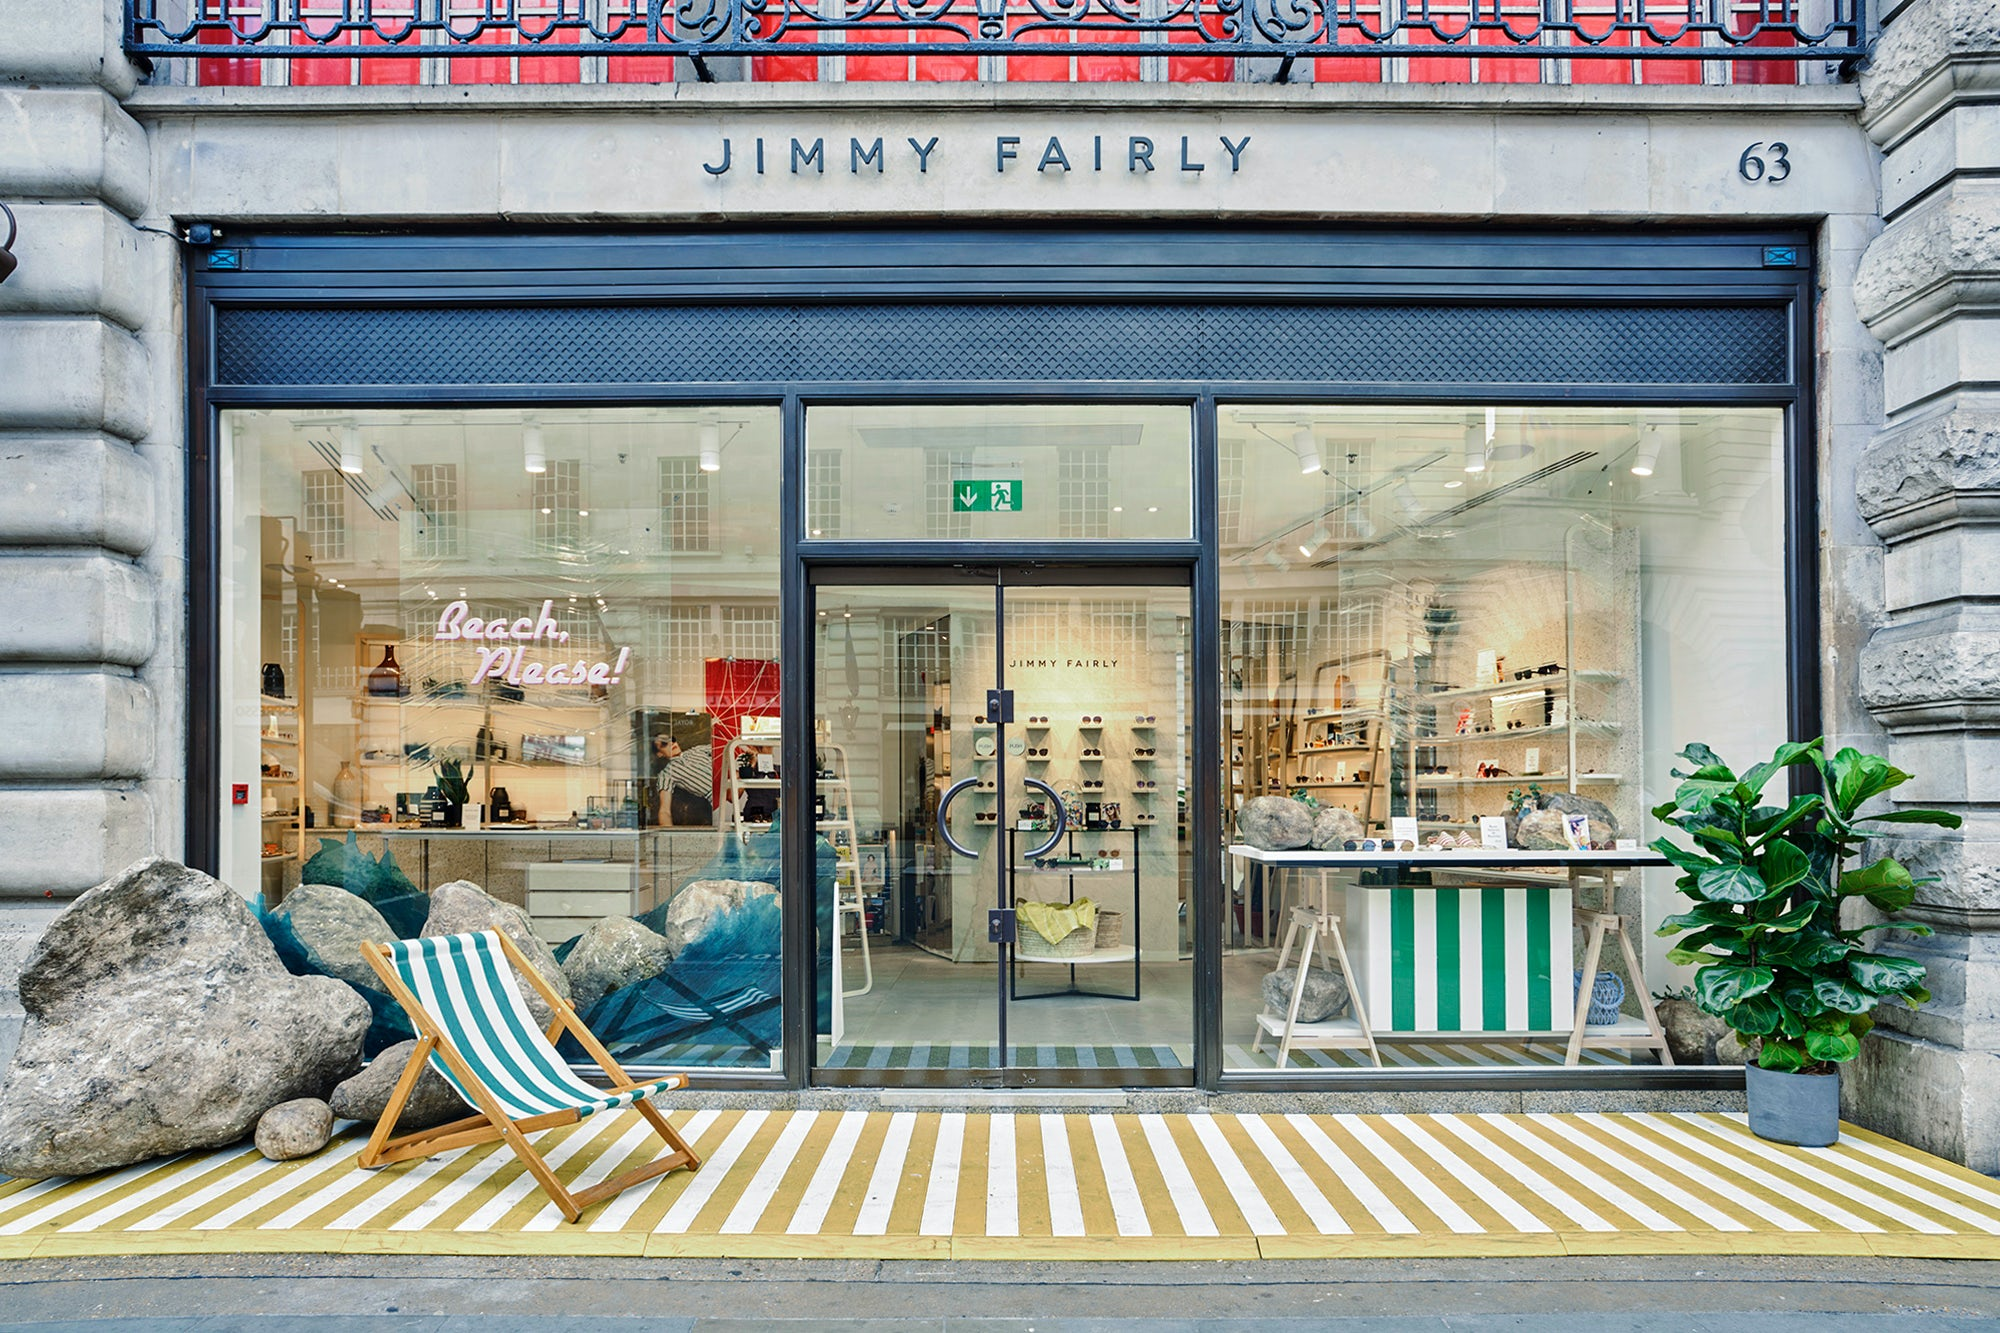 Jimmy Fairly store on Regent Street, London | Source: Courtesy